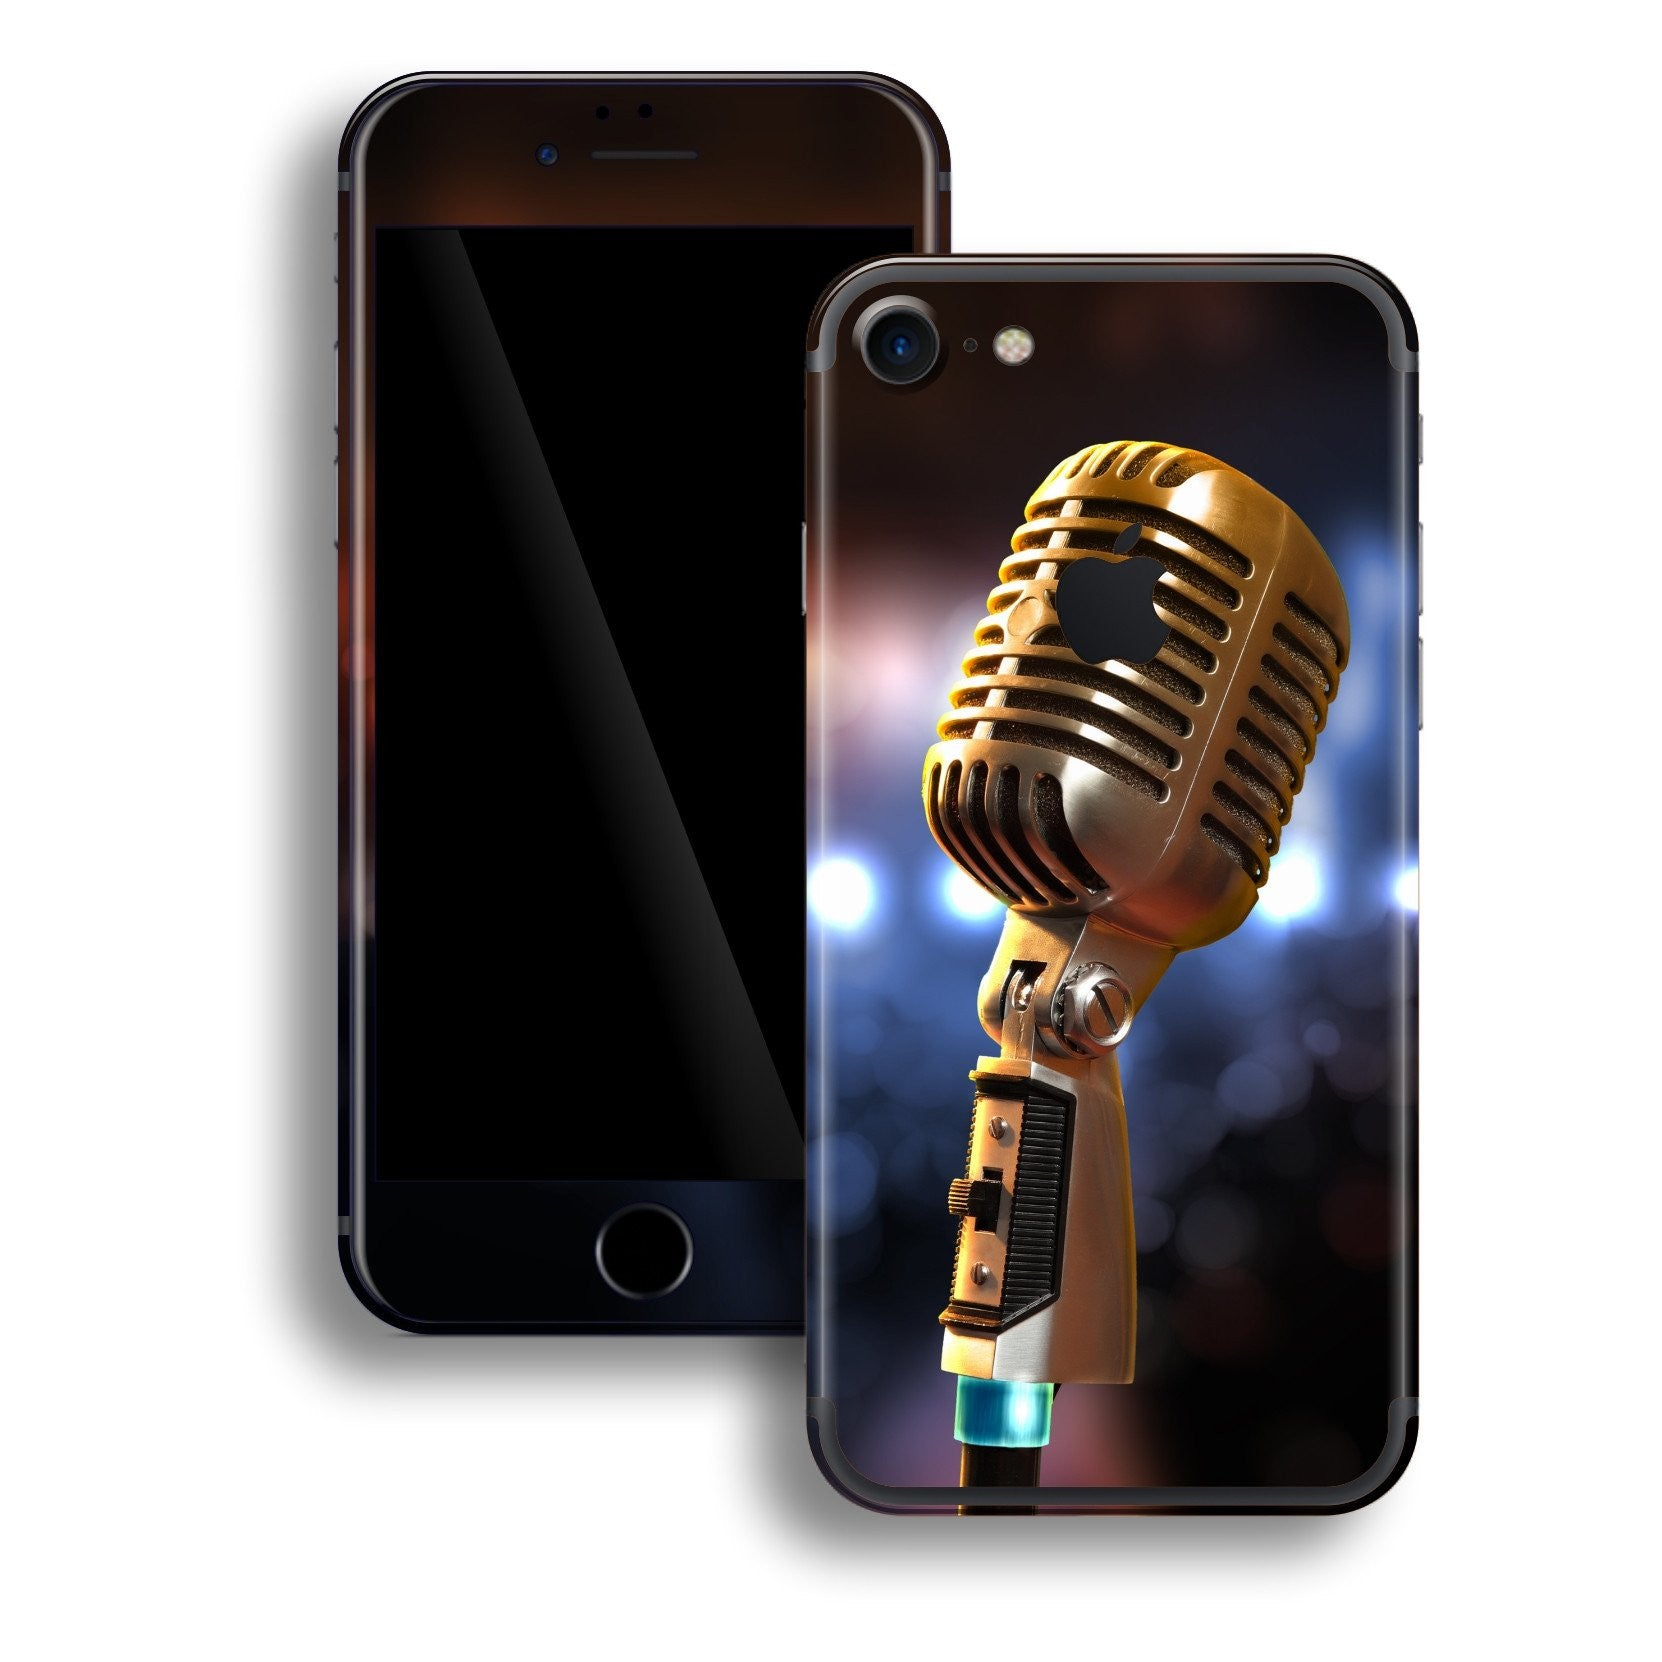 iPhone 7 Print Custom Signature Microphone Skin Wrap Decal by EasySkinz